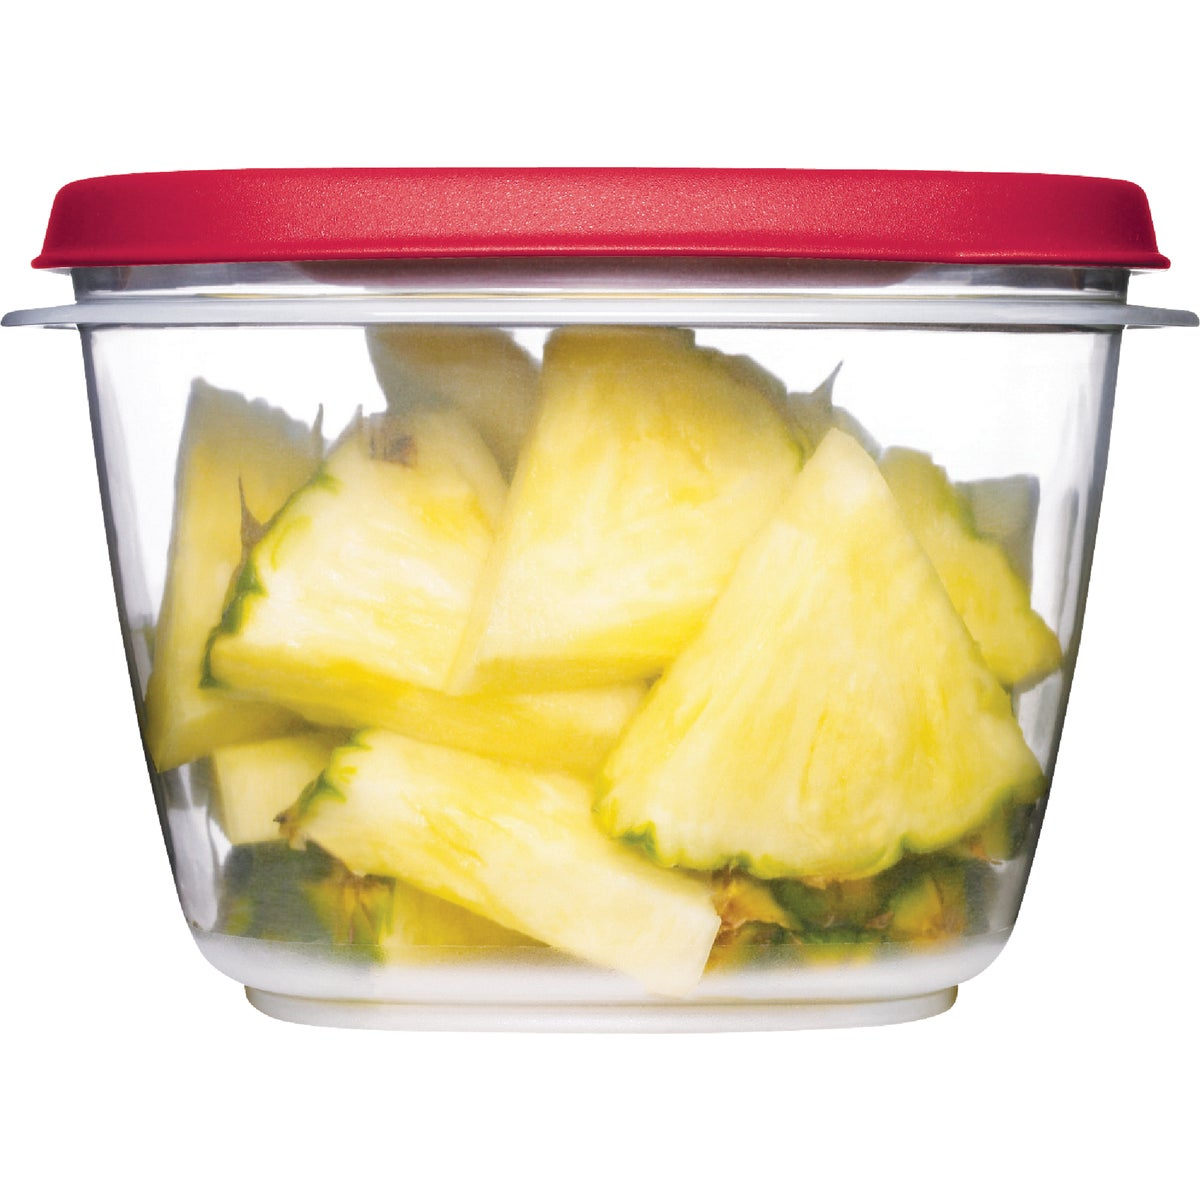 7 CUP FOOD CONTAINER - 1777088 by Rubbermaid Home